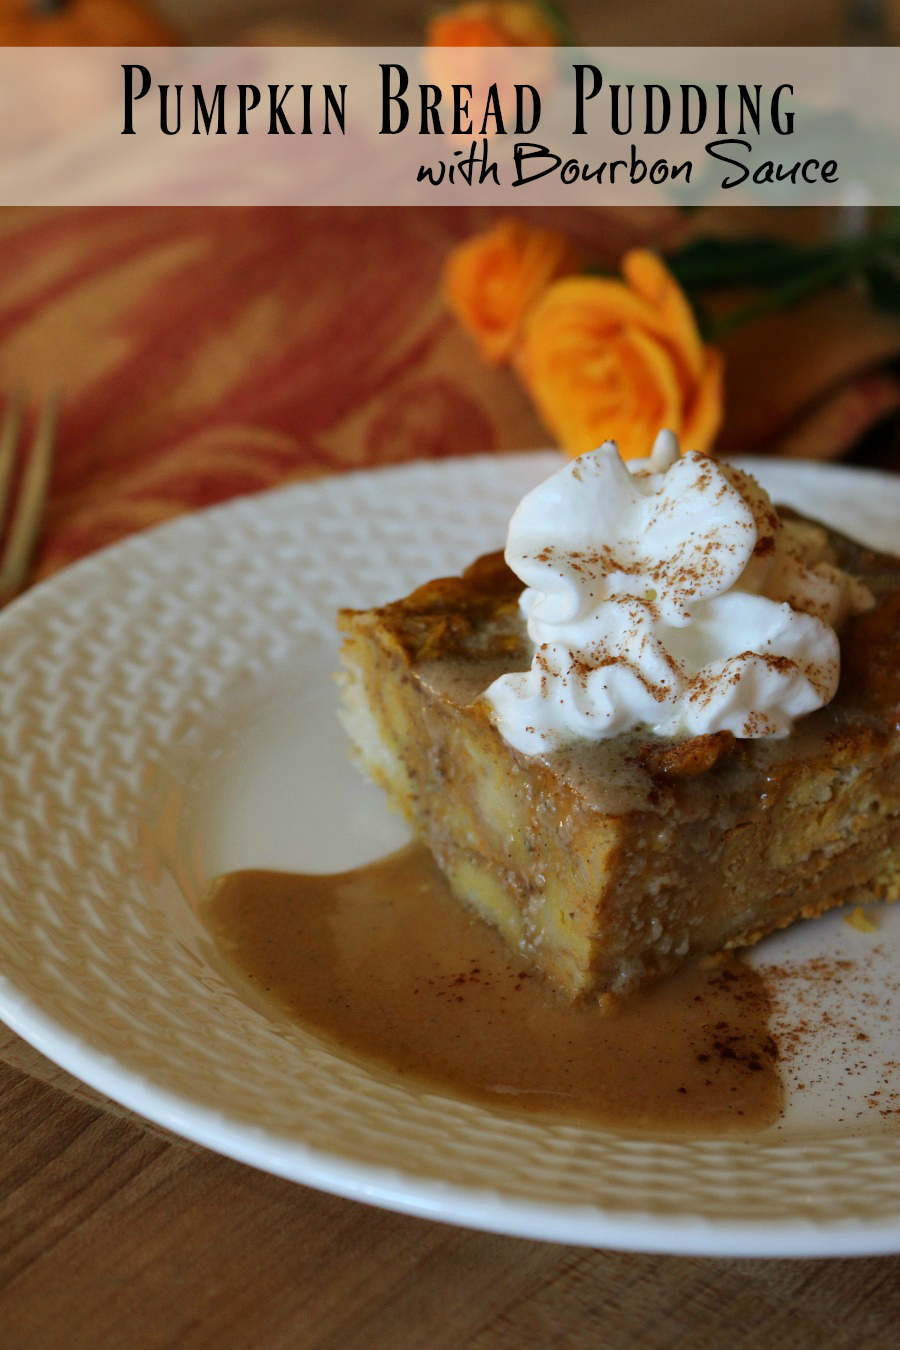 ... – Pumpkin Bread Pudding with Bourbon Sauce and tiny vanilla beans